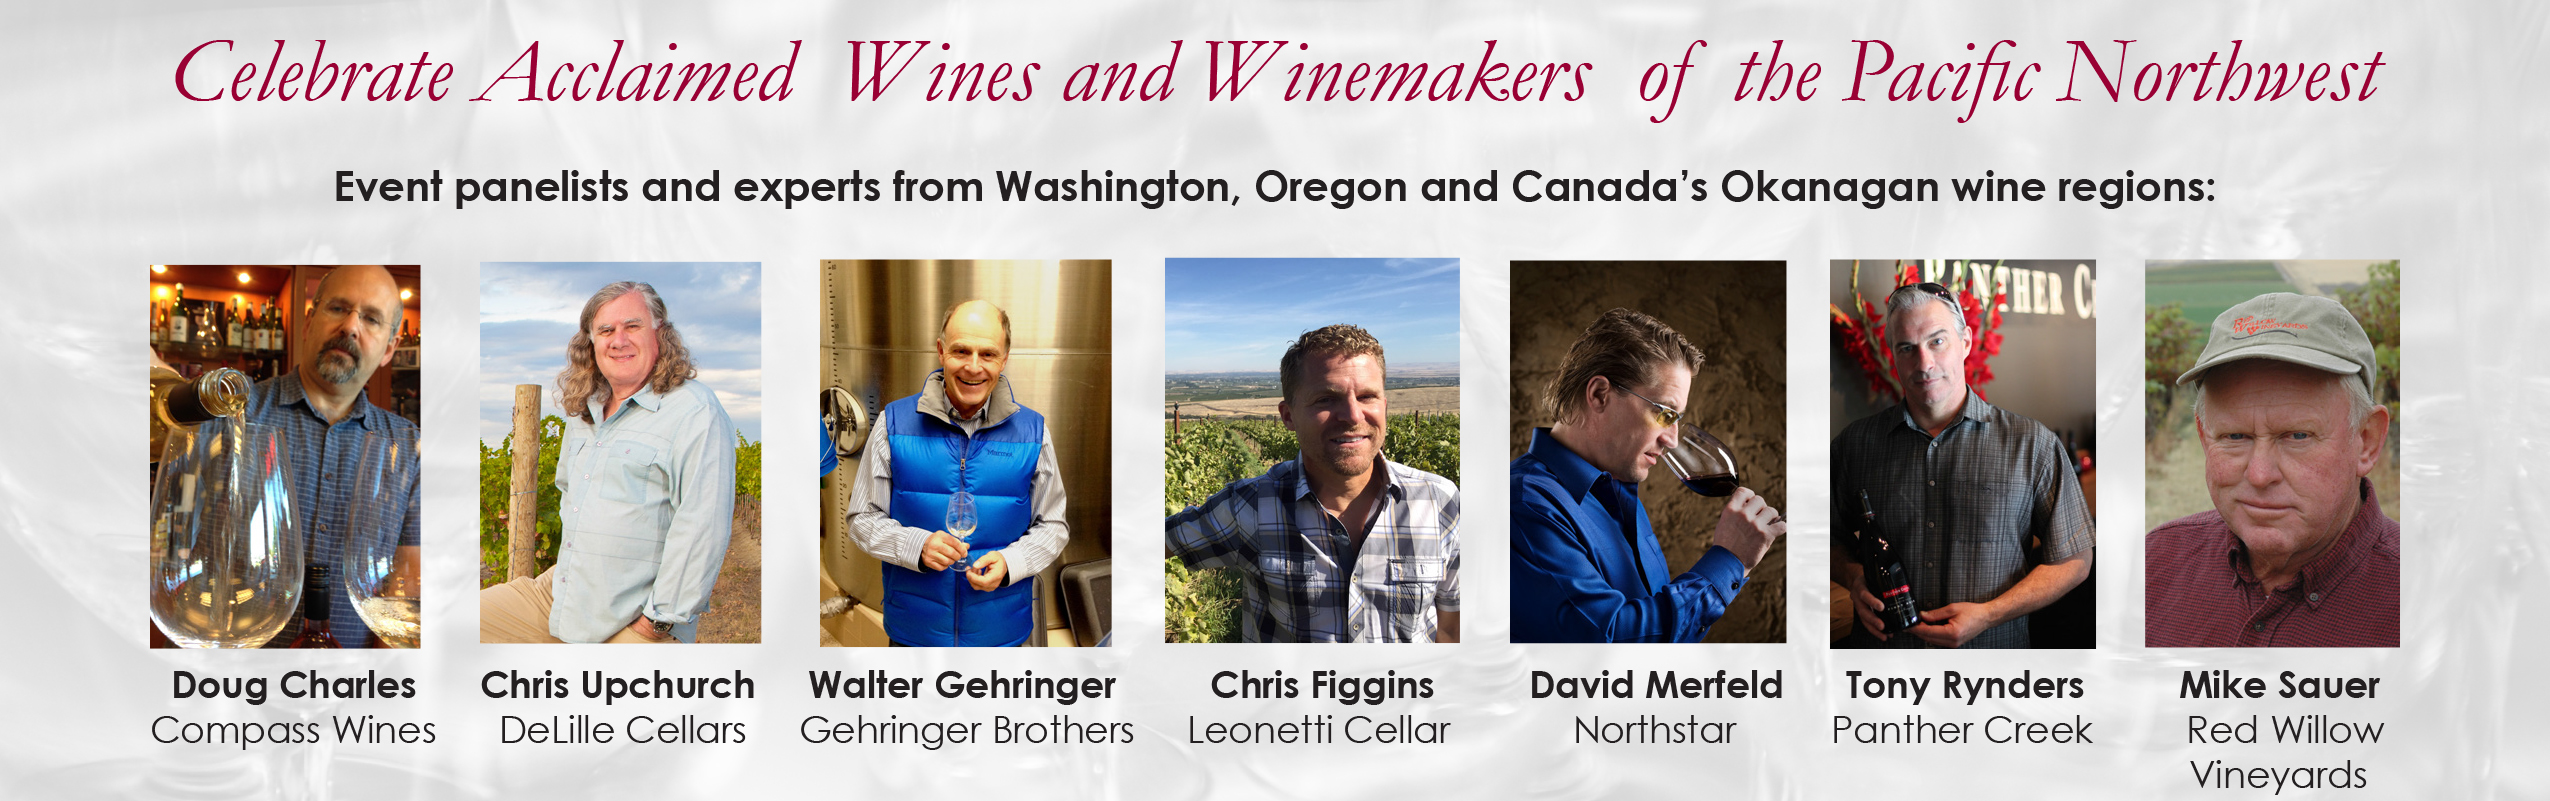 Tony Rynders Included in 2017 Northwest Wine Encounter Roster | Wine Business